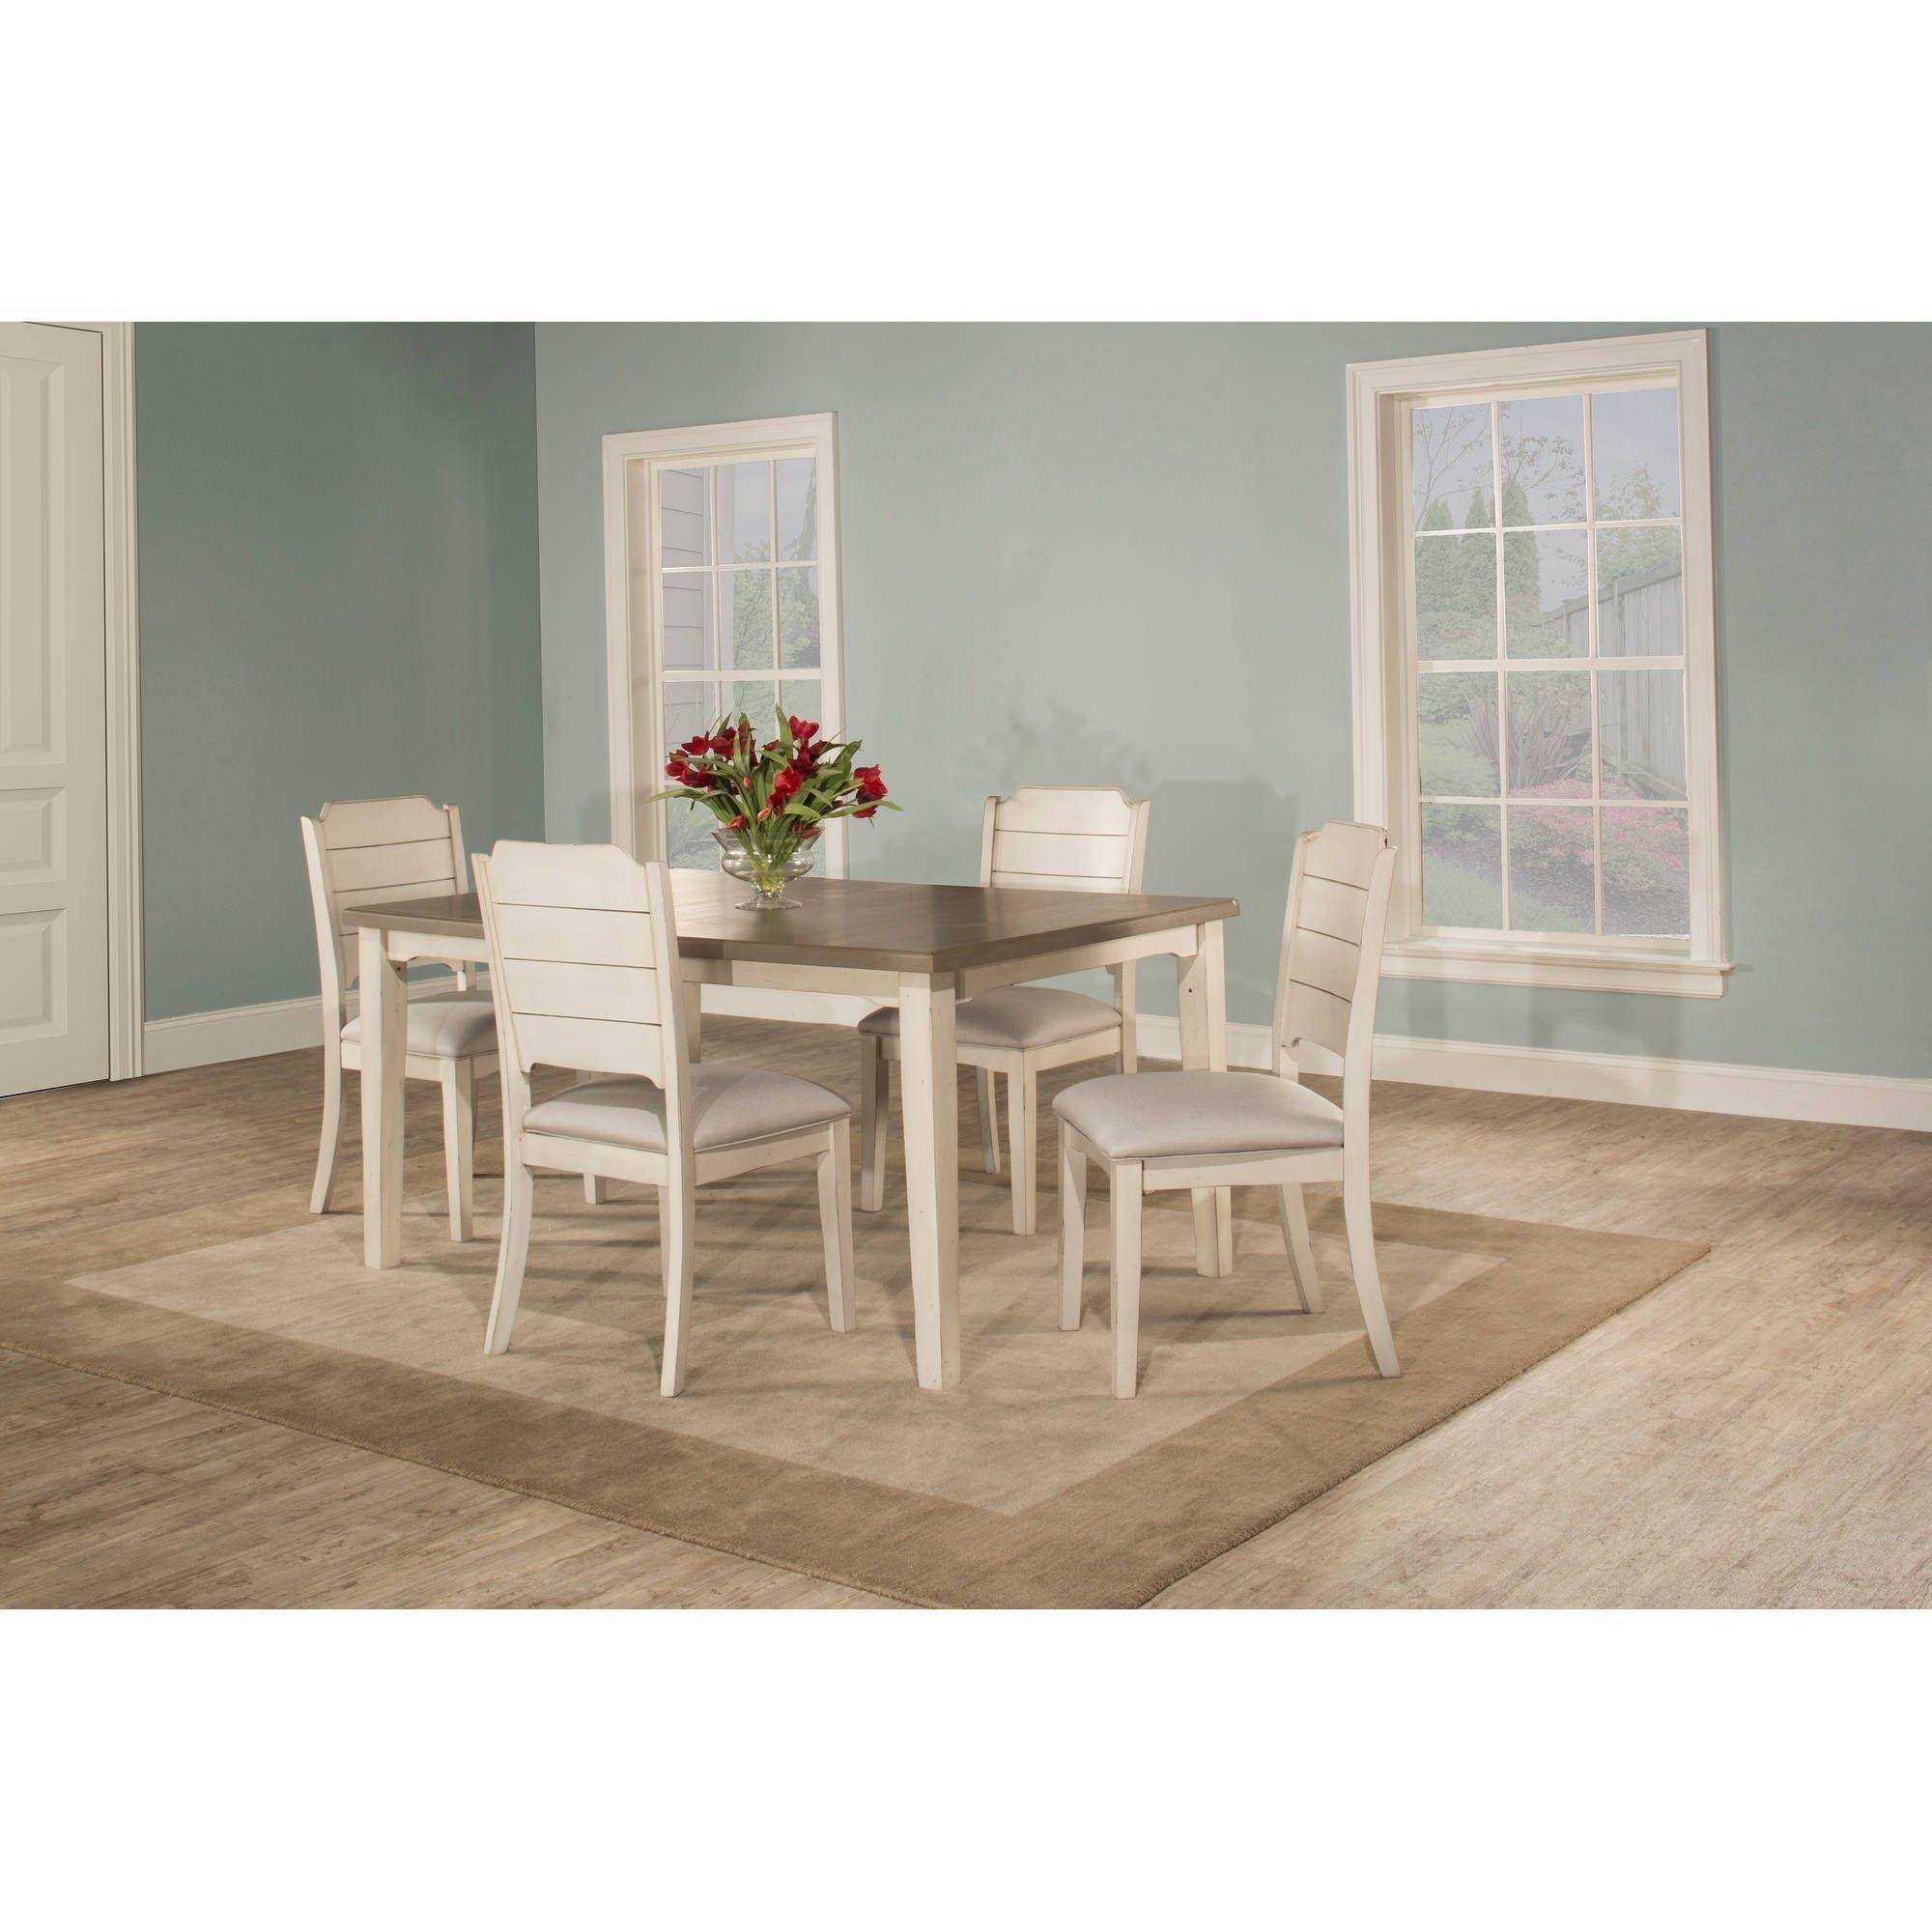 Hillsdale Furniture Clarion Five Piece Rectangle Dining